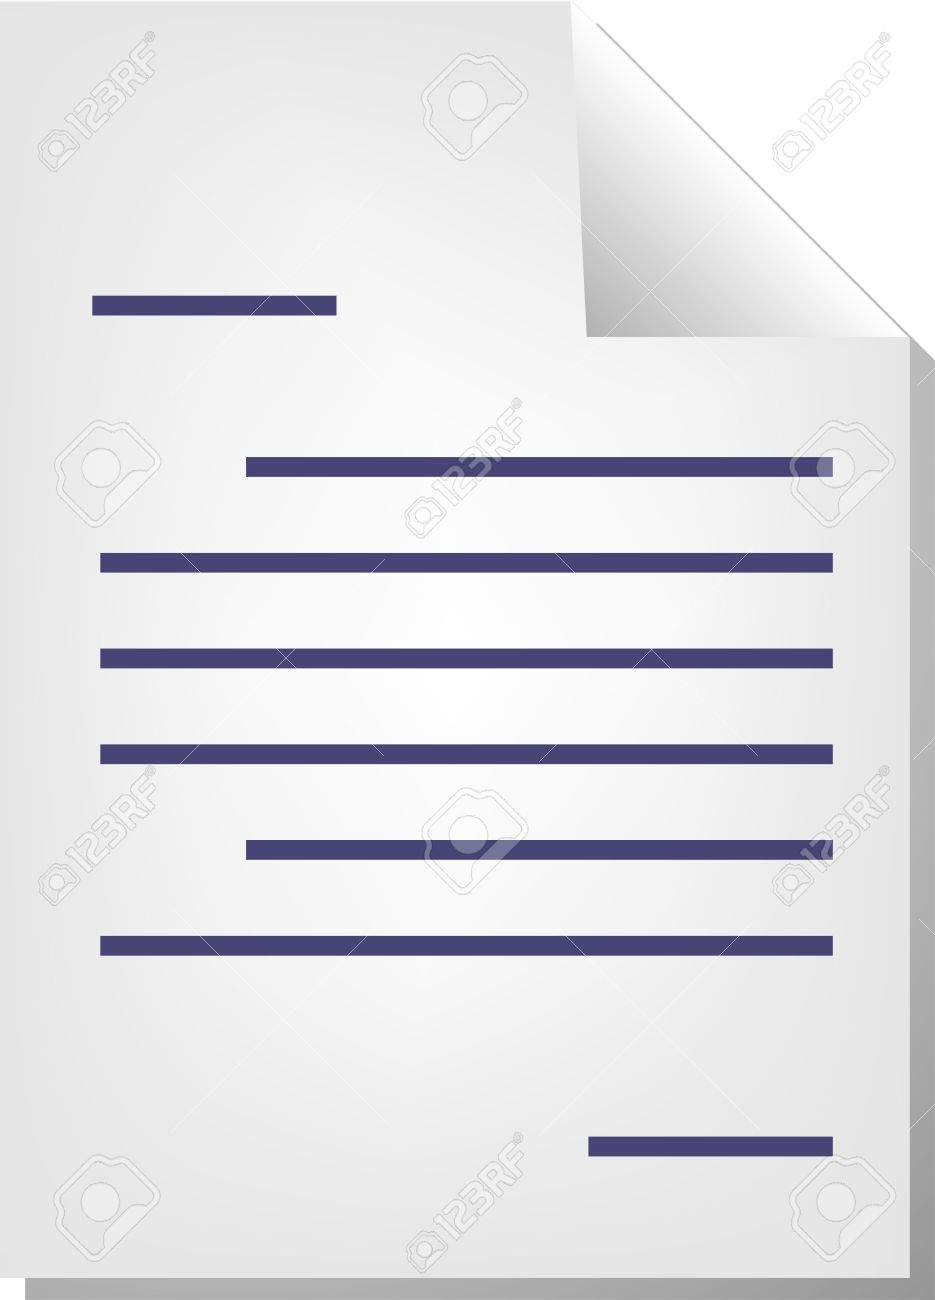 Clipart dokument png library stock Document Clipart | Clipart Panda - Free Clipart Images png library stock